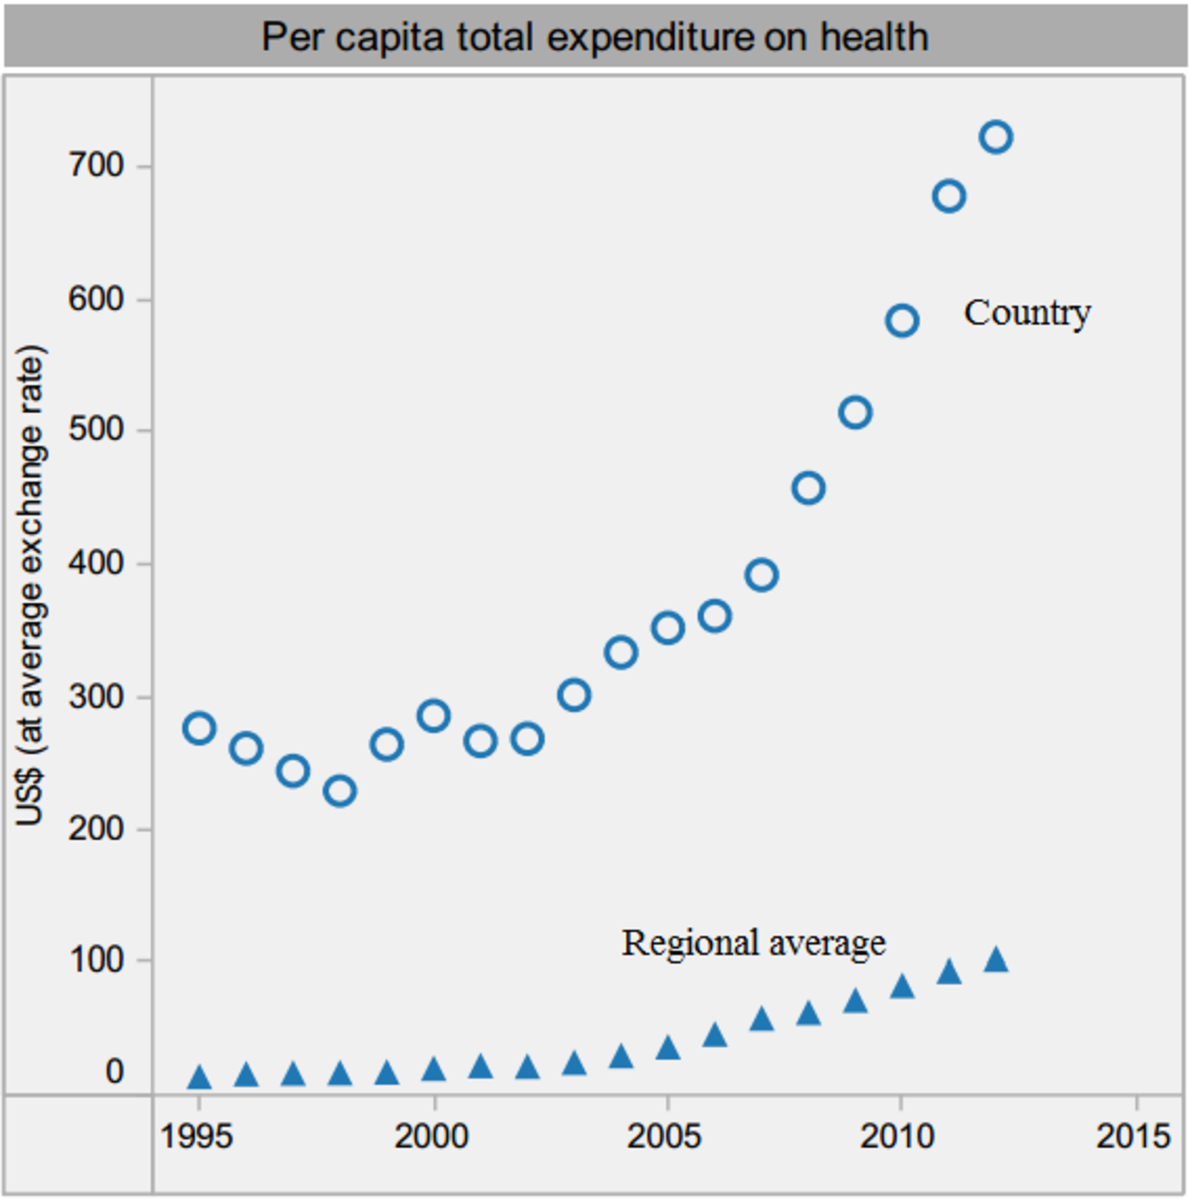 Per capita health care expenditure in Vietnam sharply increased from 1995 to 2012